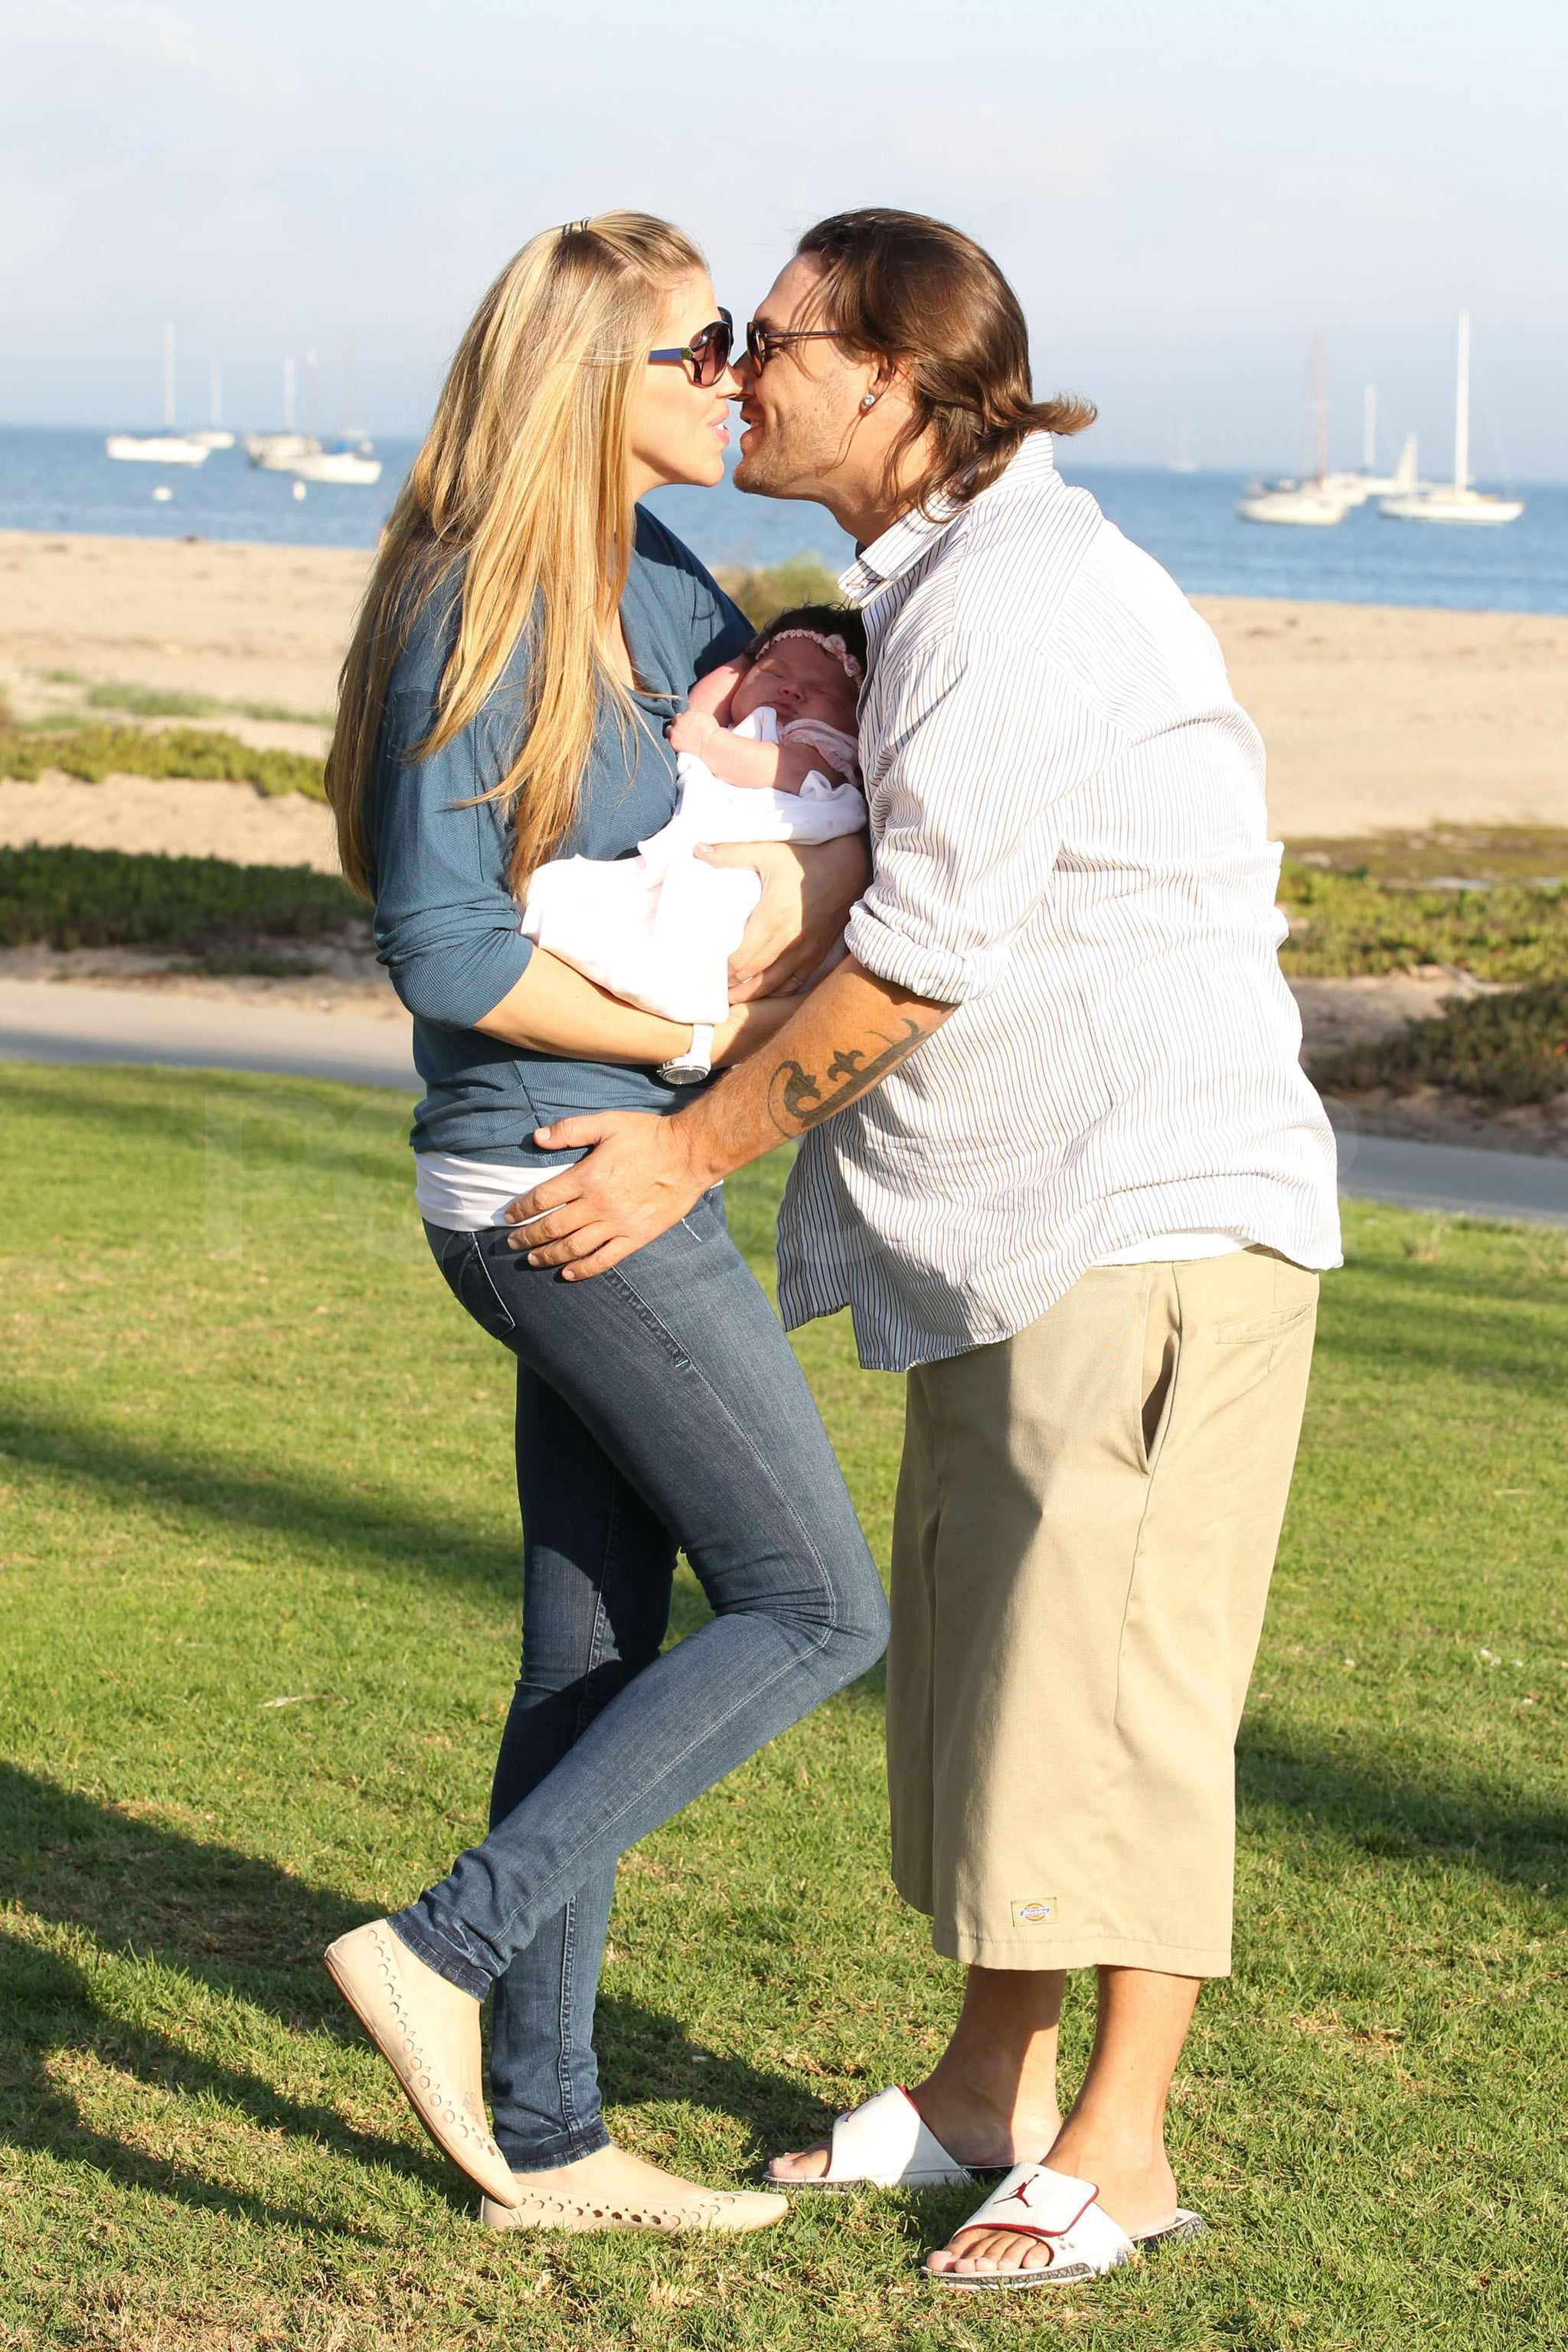 Kevin Federline And Victoria Prince Stole A Kiss While They Held Baby First Pictures Kevin Federline And Victoria Prince Debut Baby Jordan Kay During A Beach Day Popsugar Celebrity Photo 4